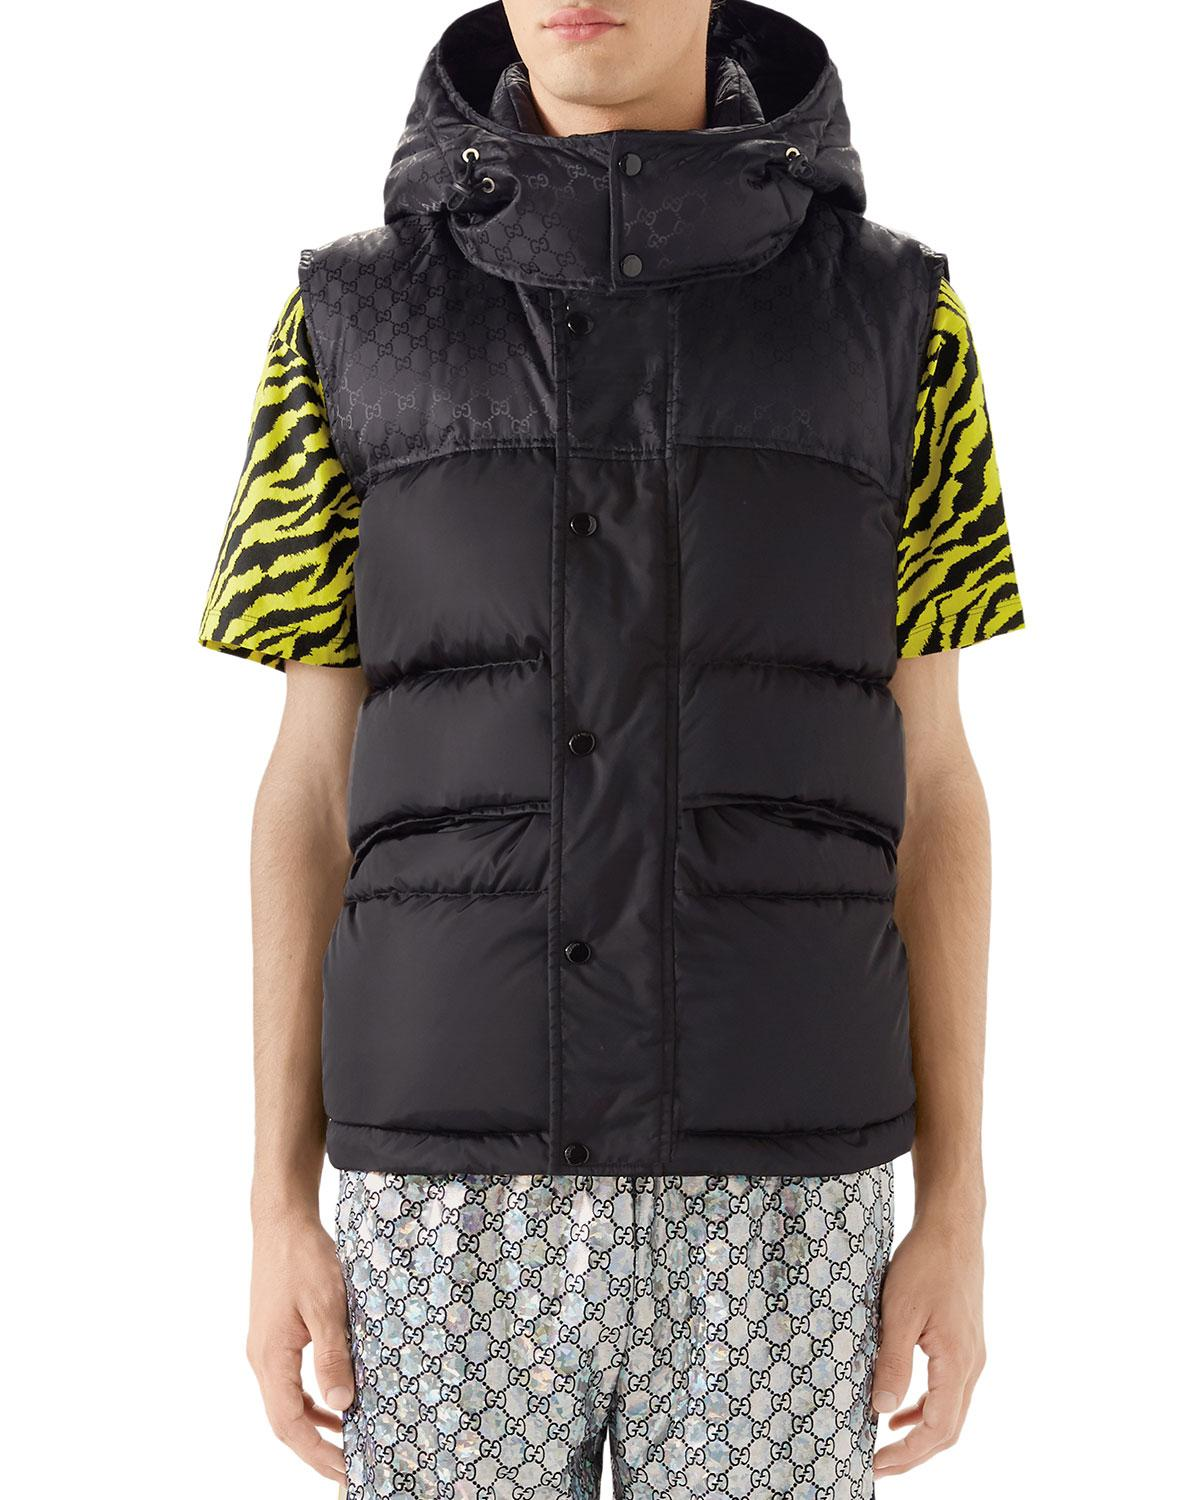 f8b935b0f Lyst - Gucci Men's Interlocking-GG Hooded Puffer Vest in Black for Men